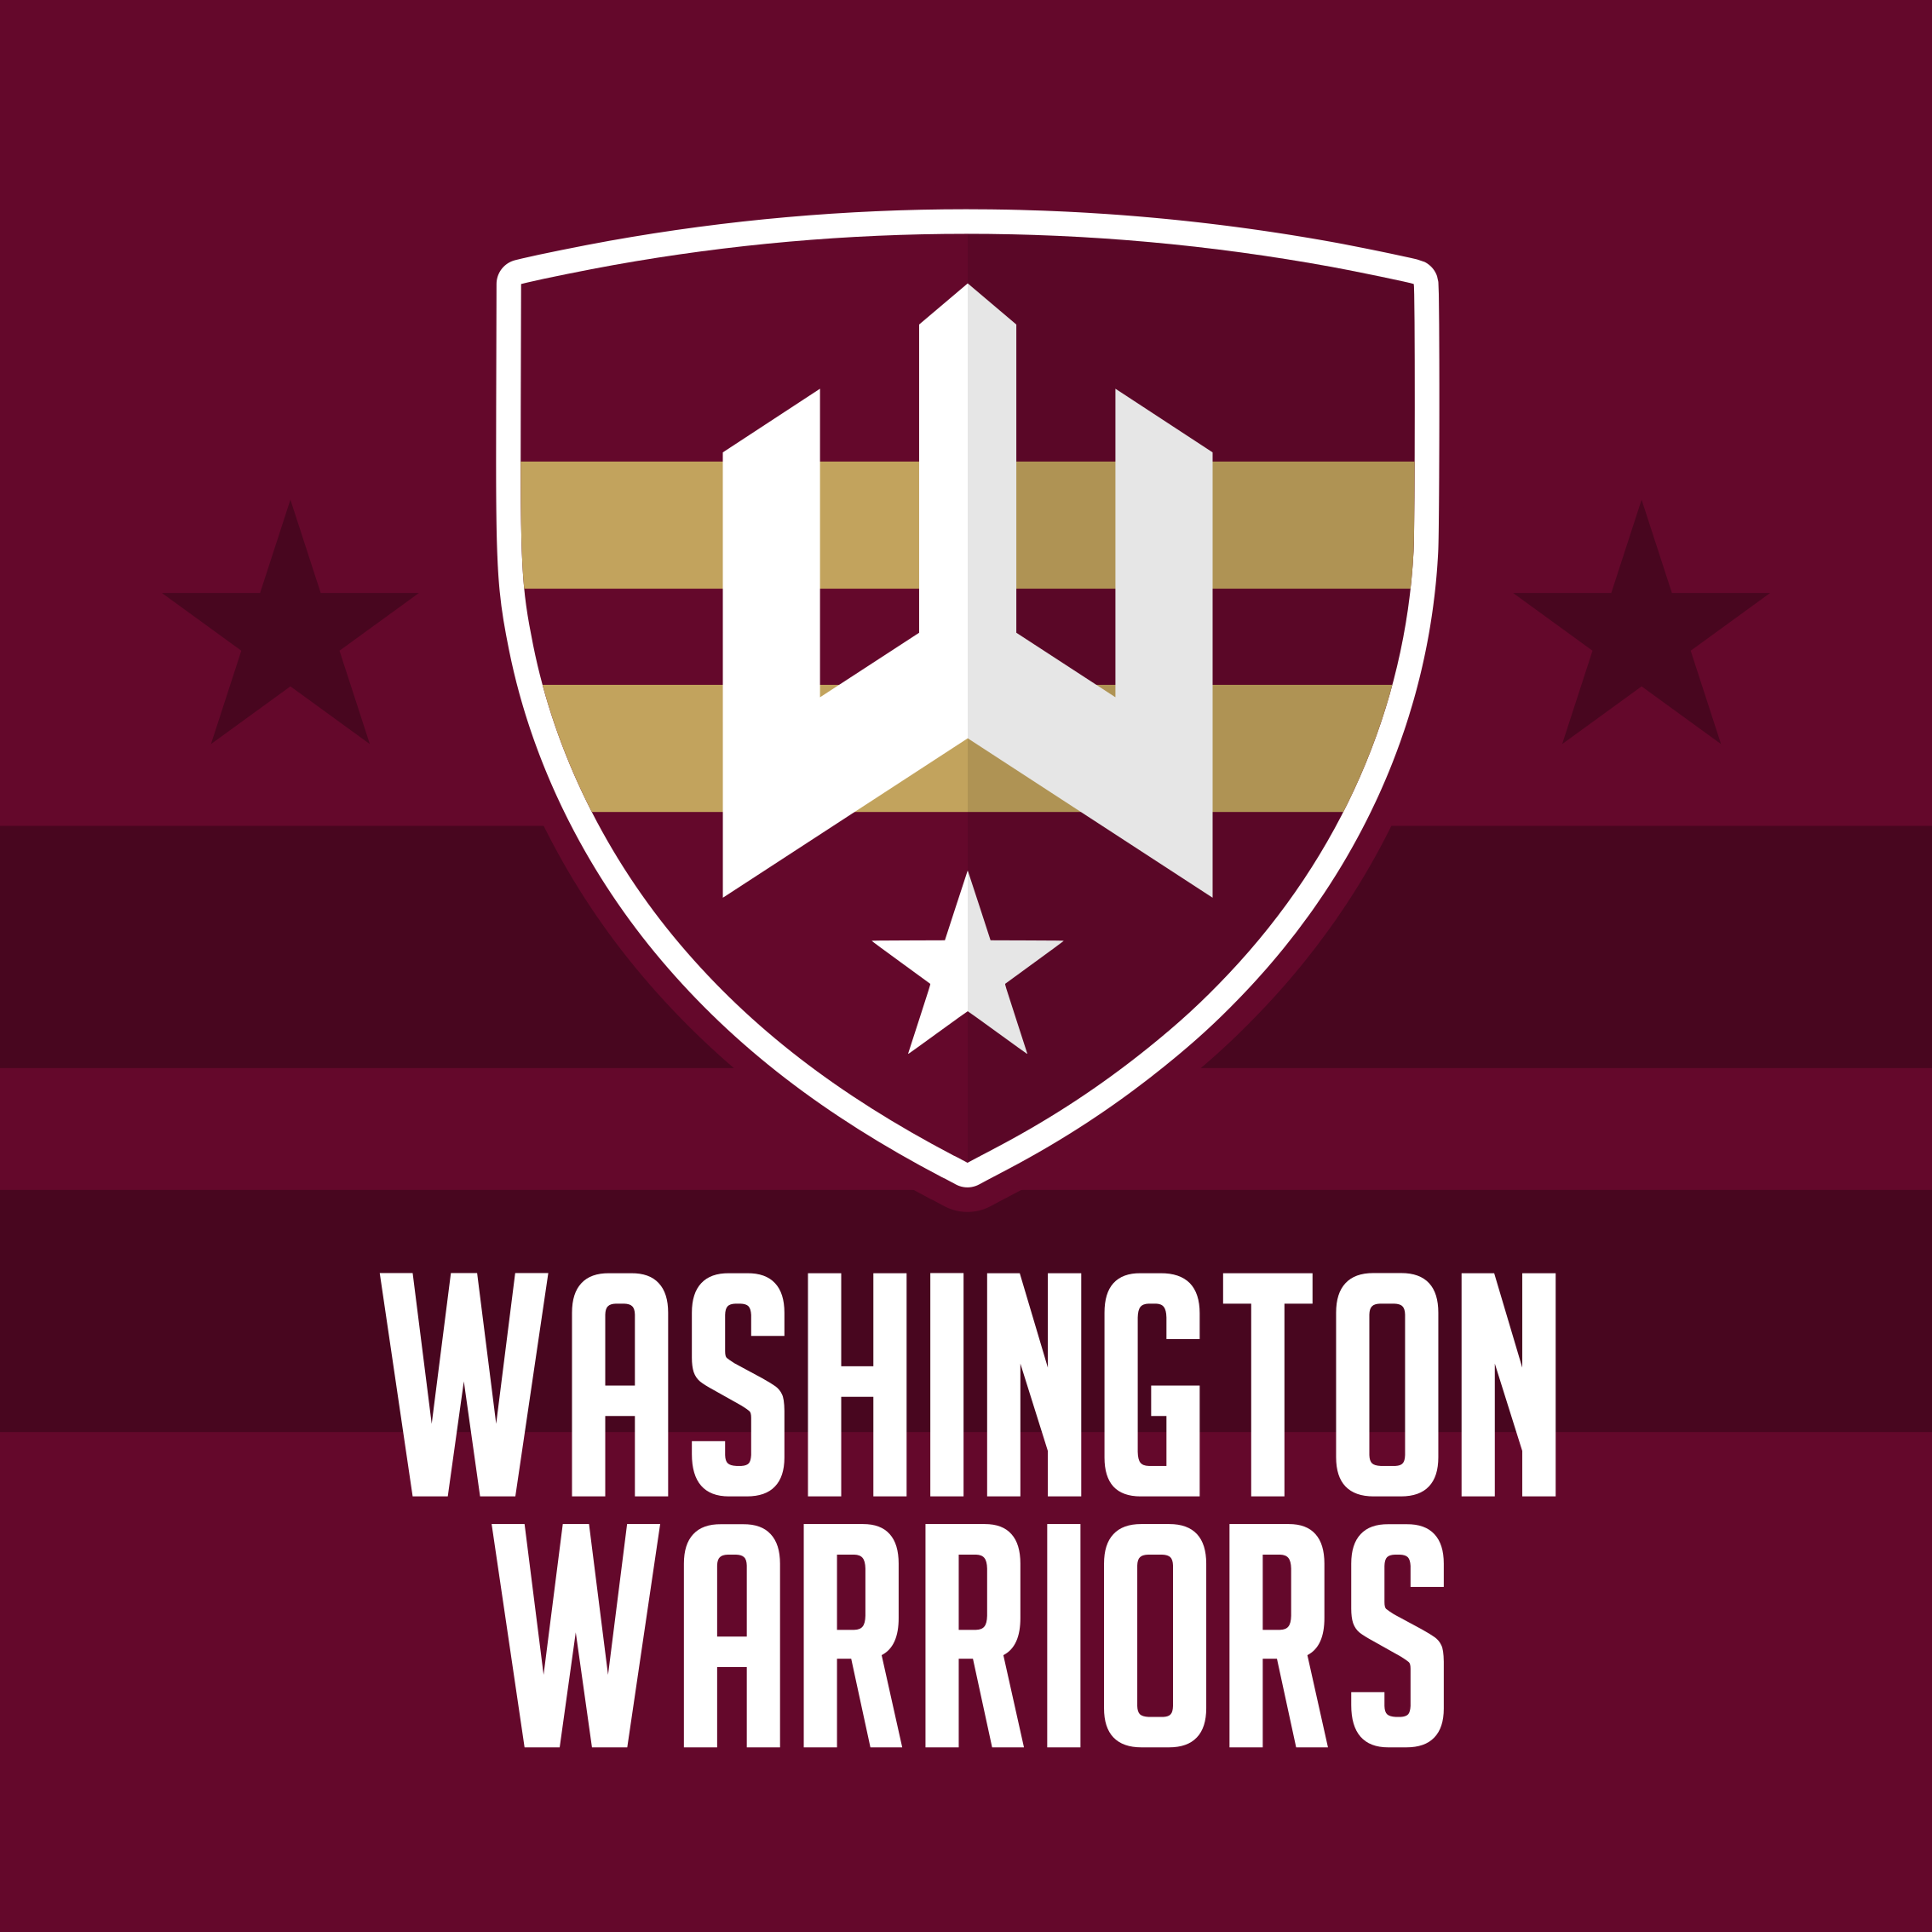 WashingtonWarriors